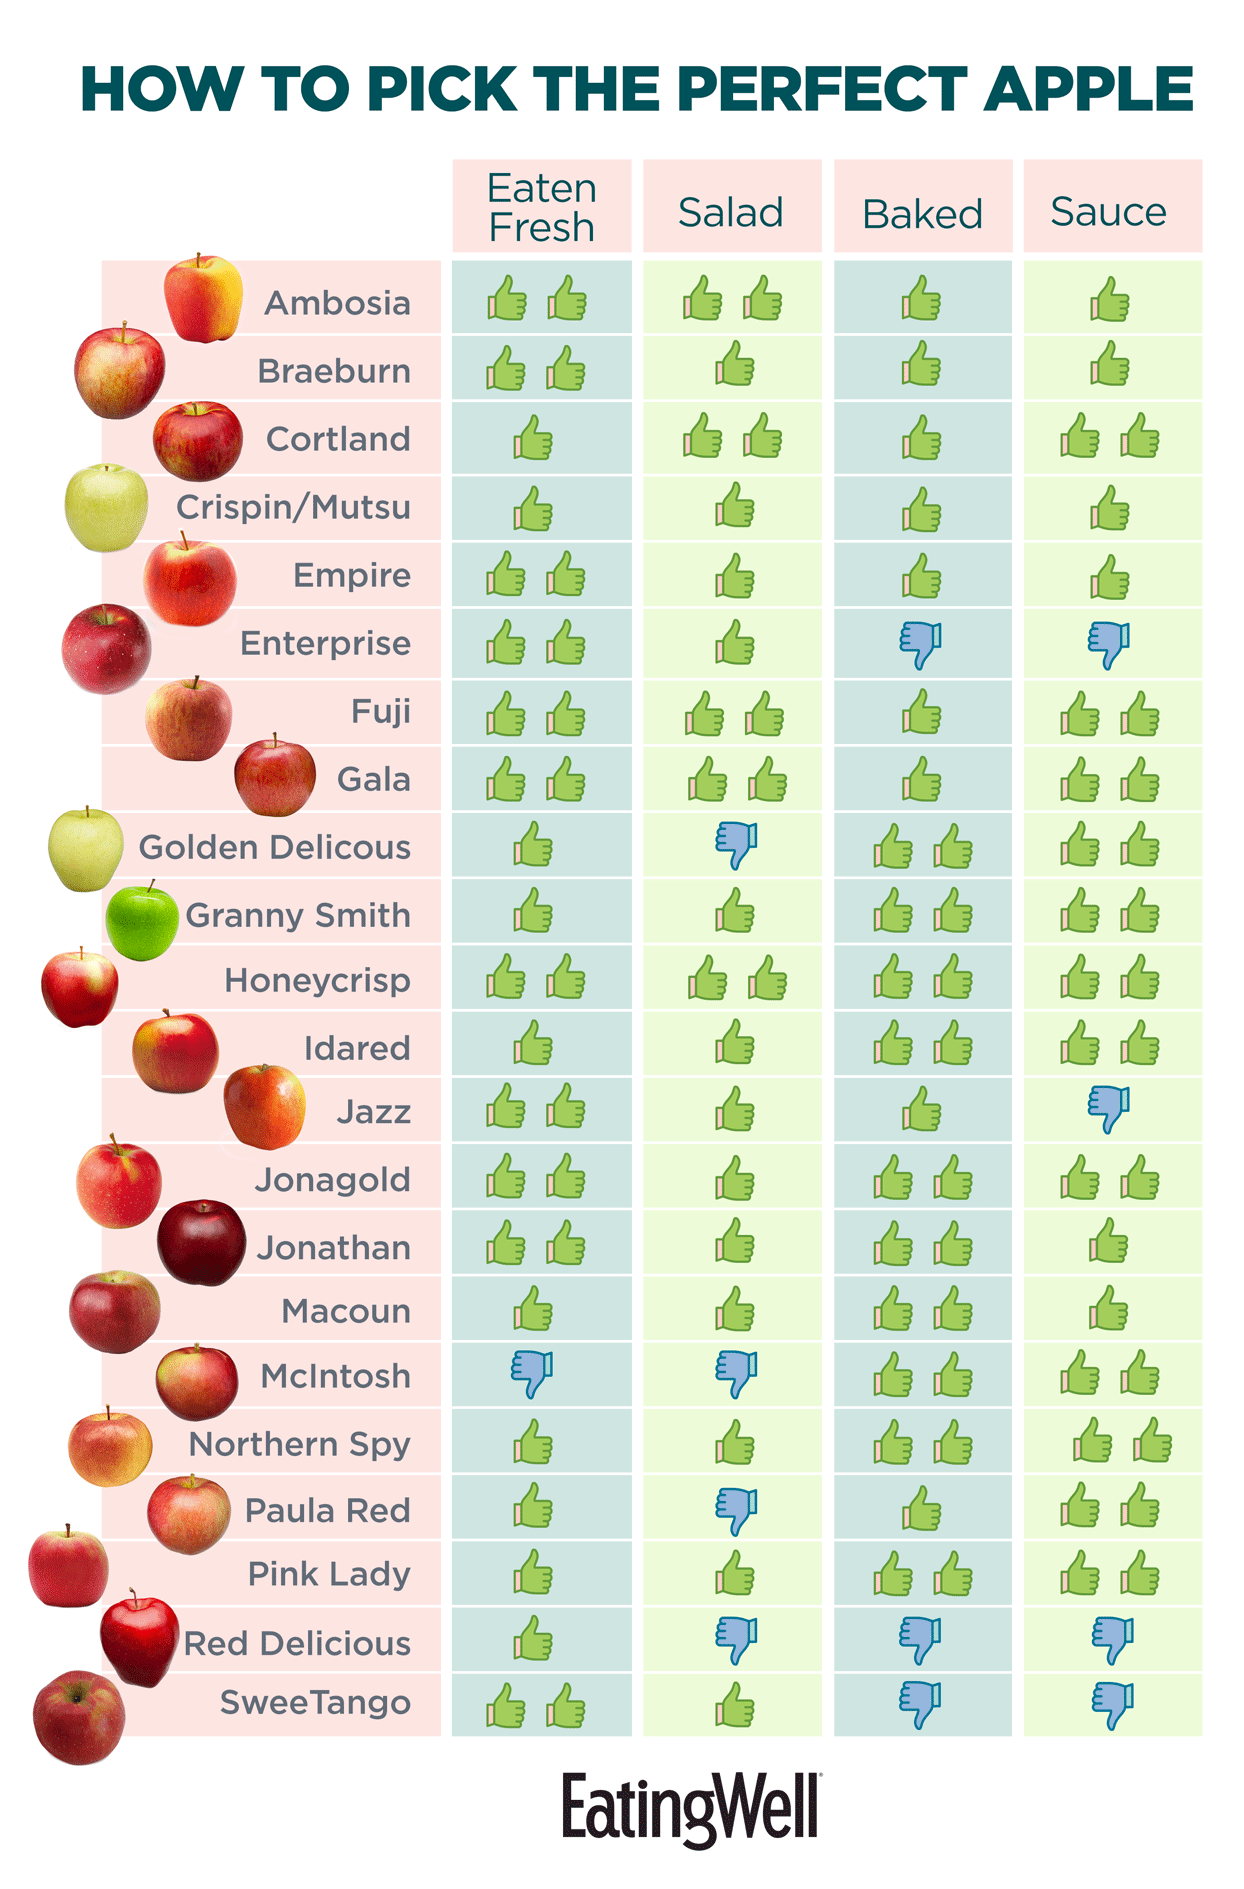 How to pick the perfect apple